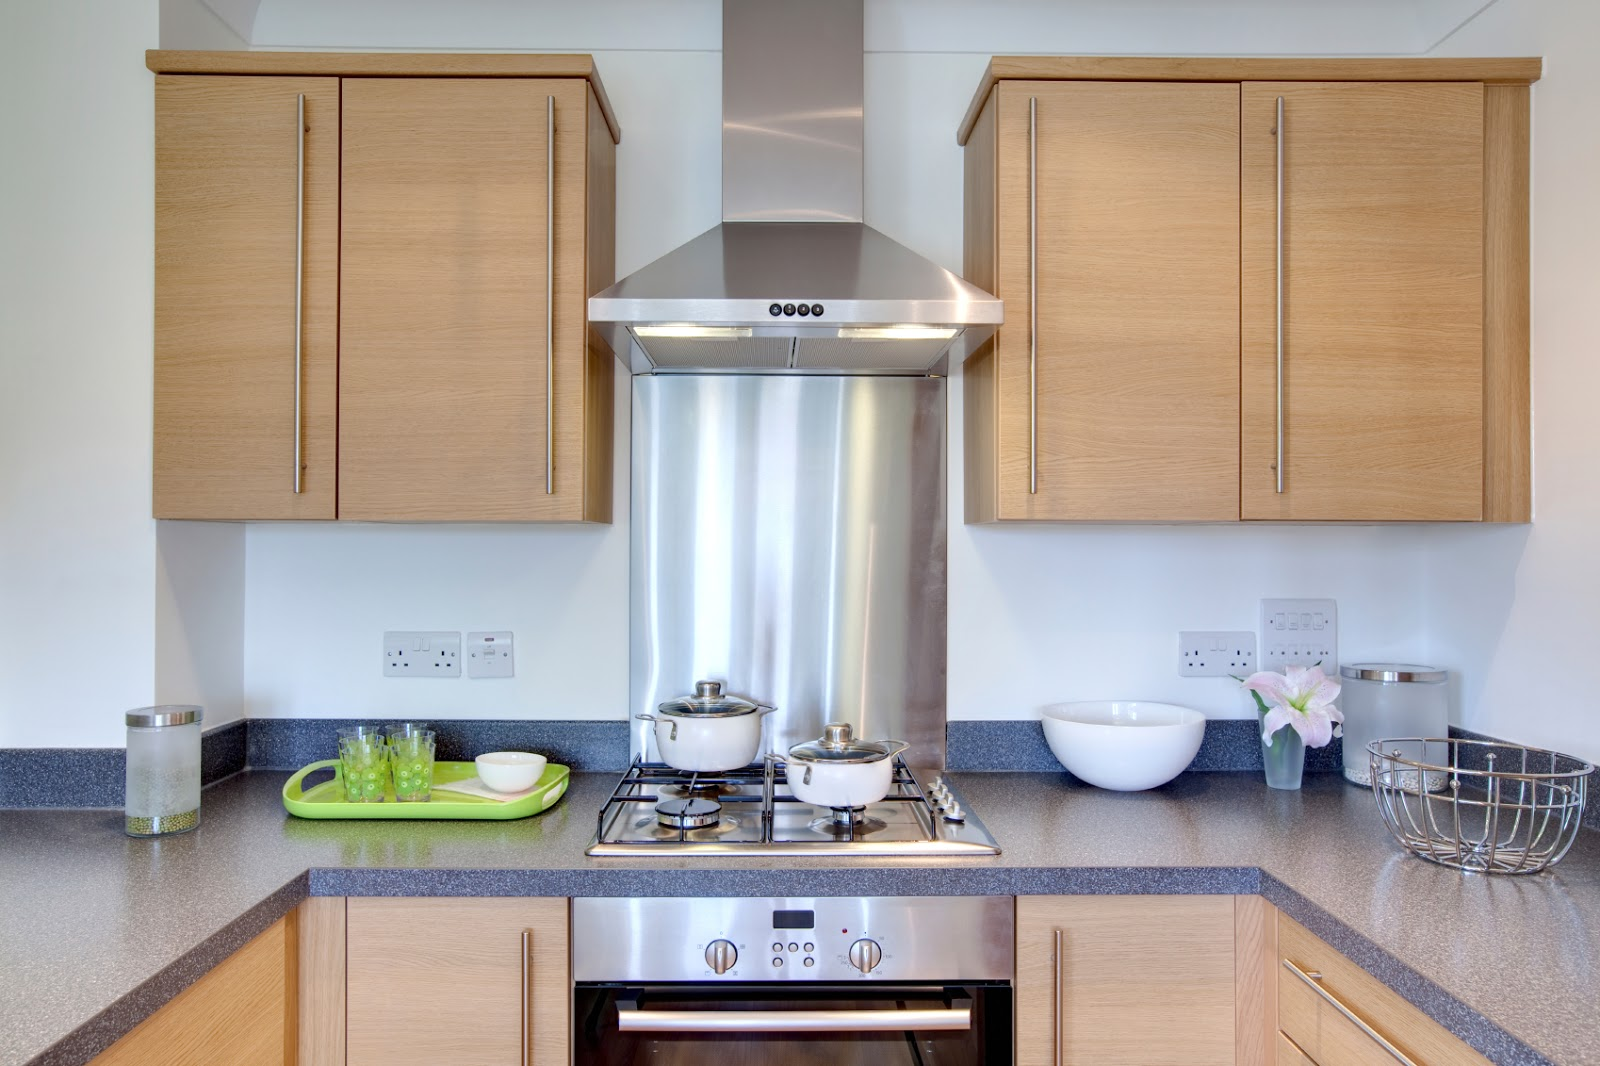 Getting Rid Of Kitchen Odors Is Simpler Than You Might Think If Want To Keep Your House Smelling Fresh Try These Easy Inexpensive Ideas